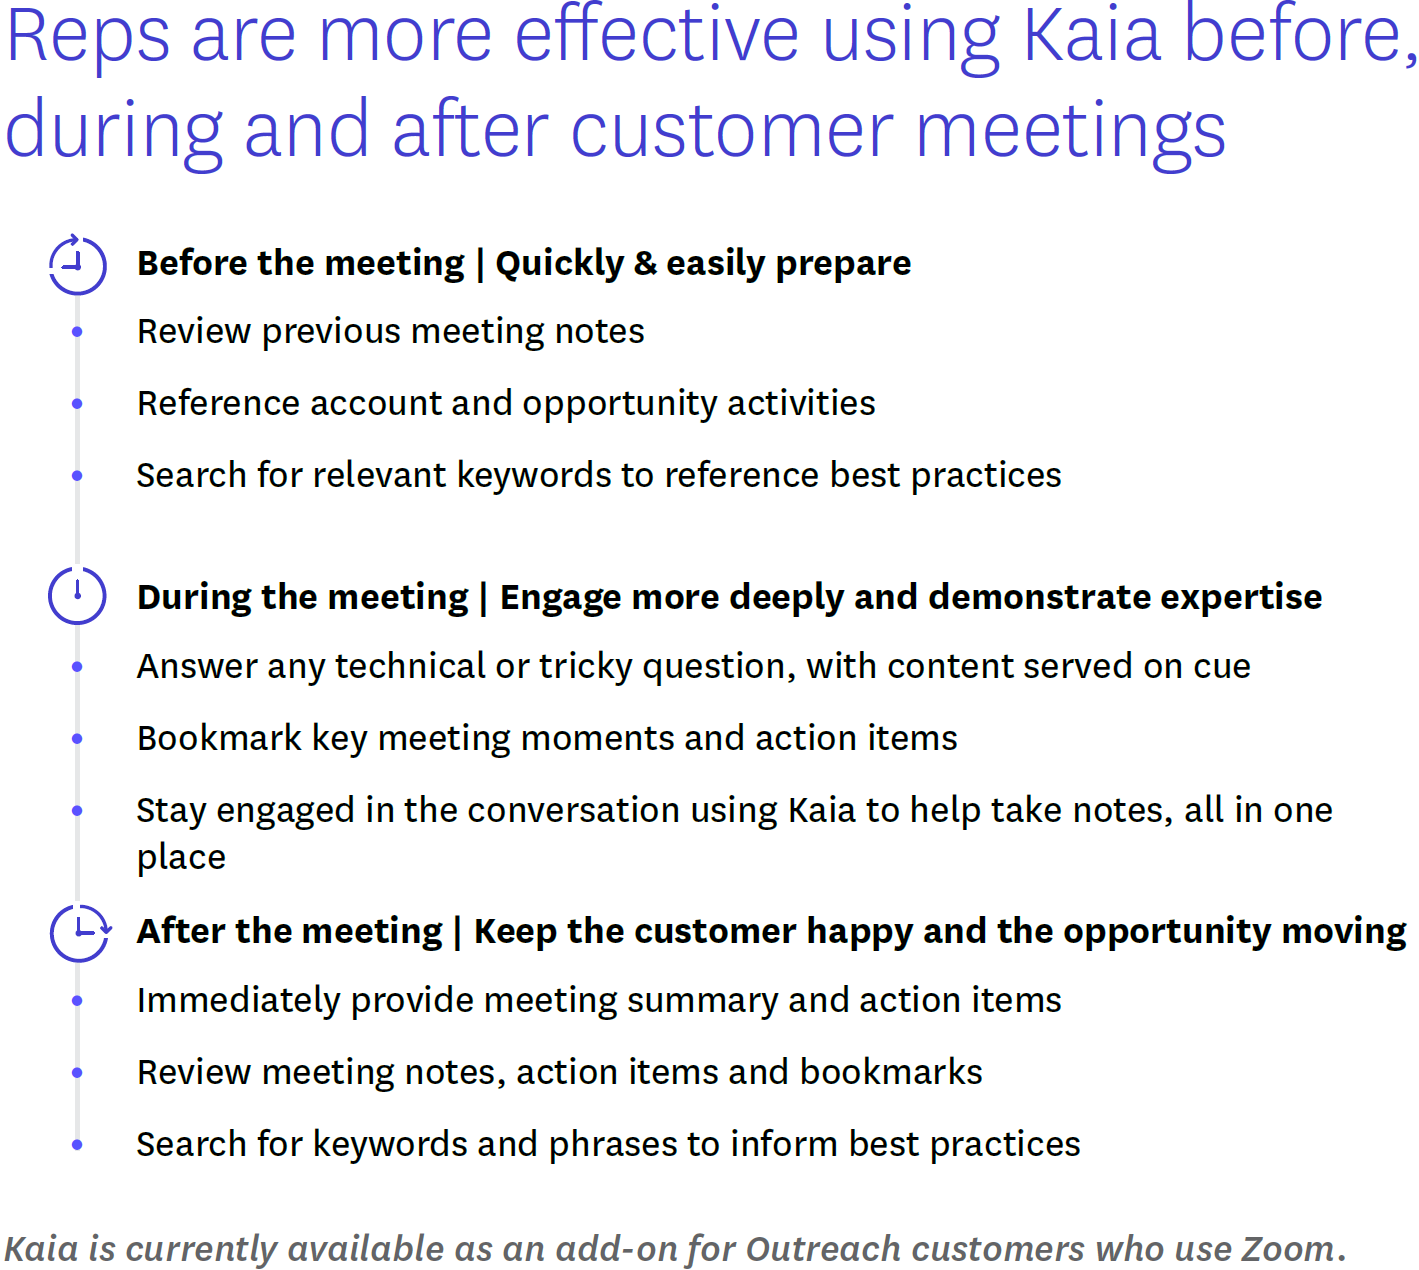 Kaia helps reps before during and after meetings